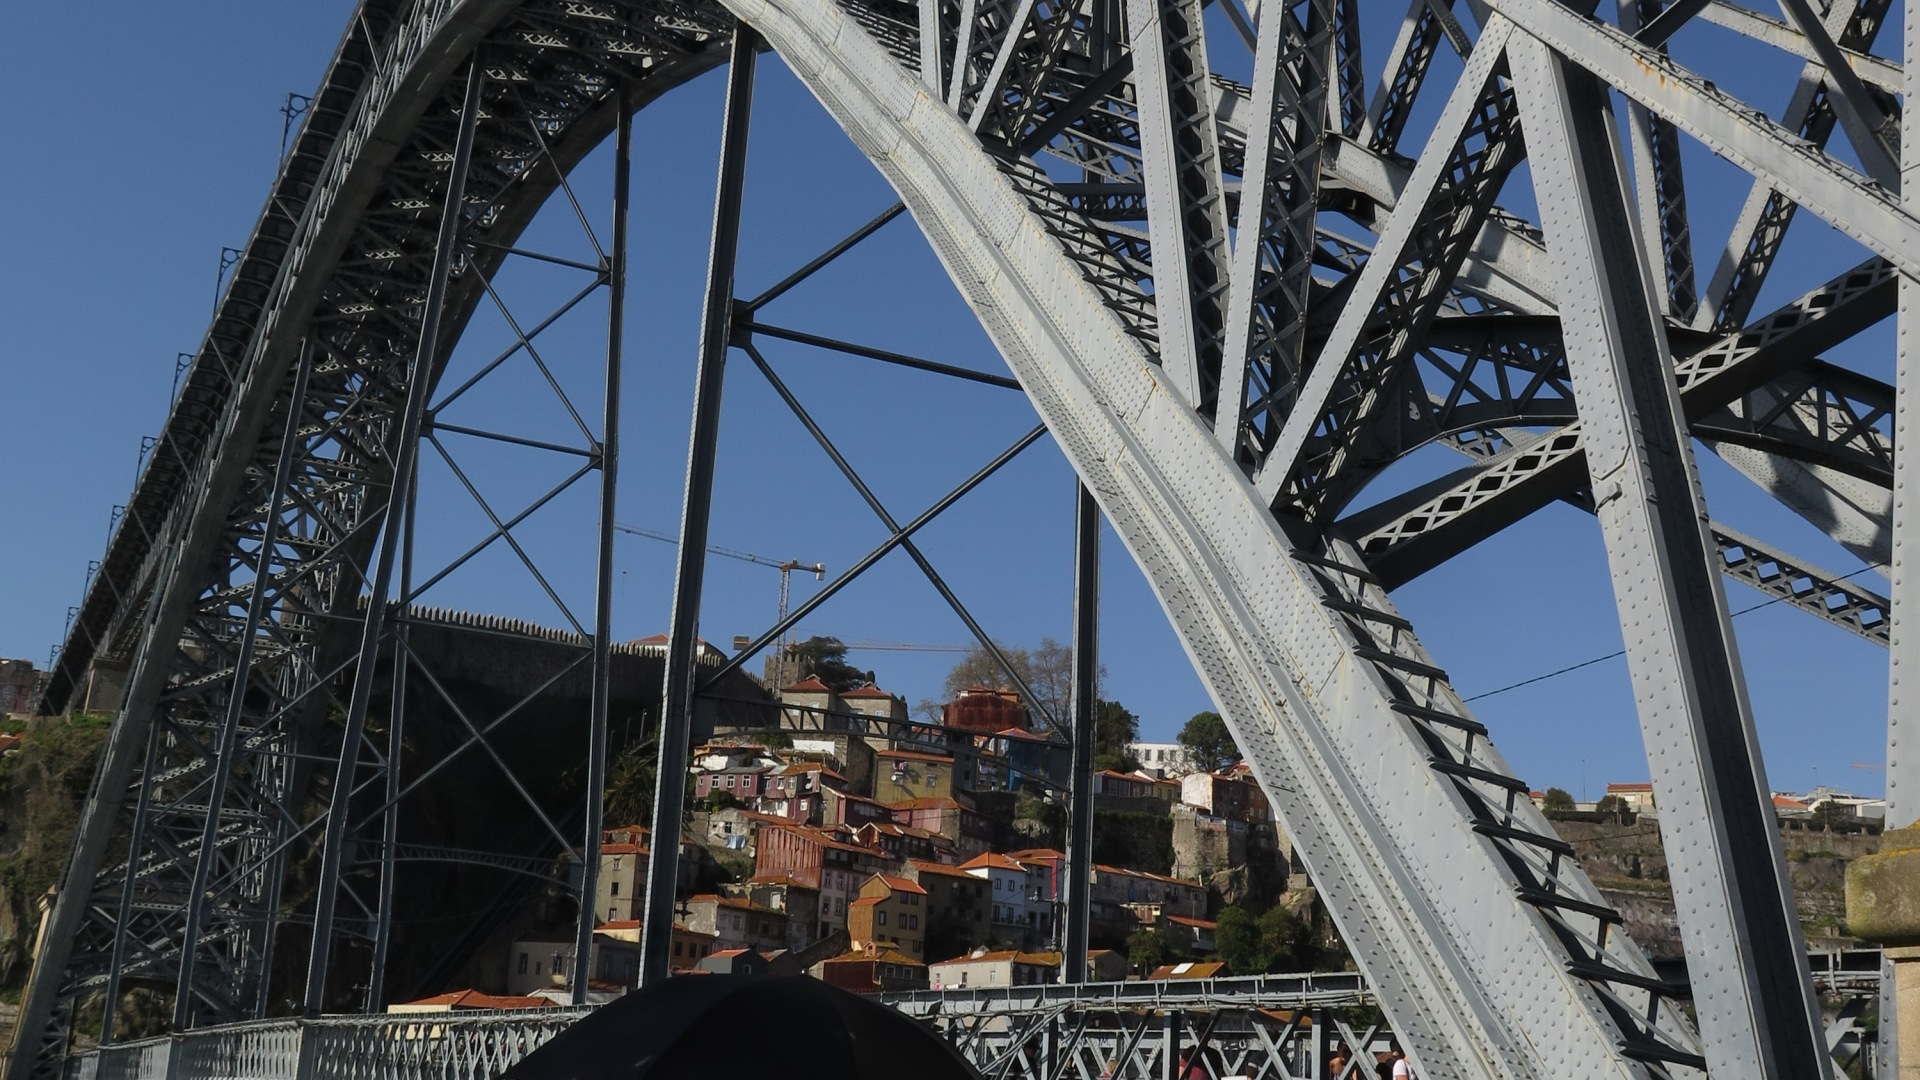 portugal-porto-bridge-hats